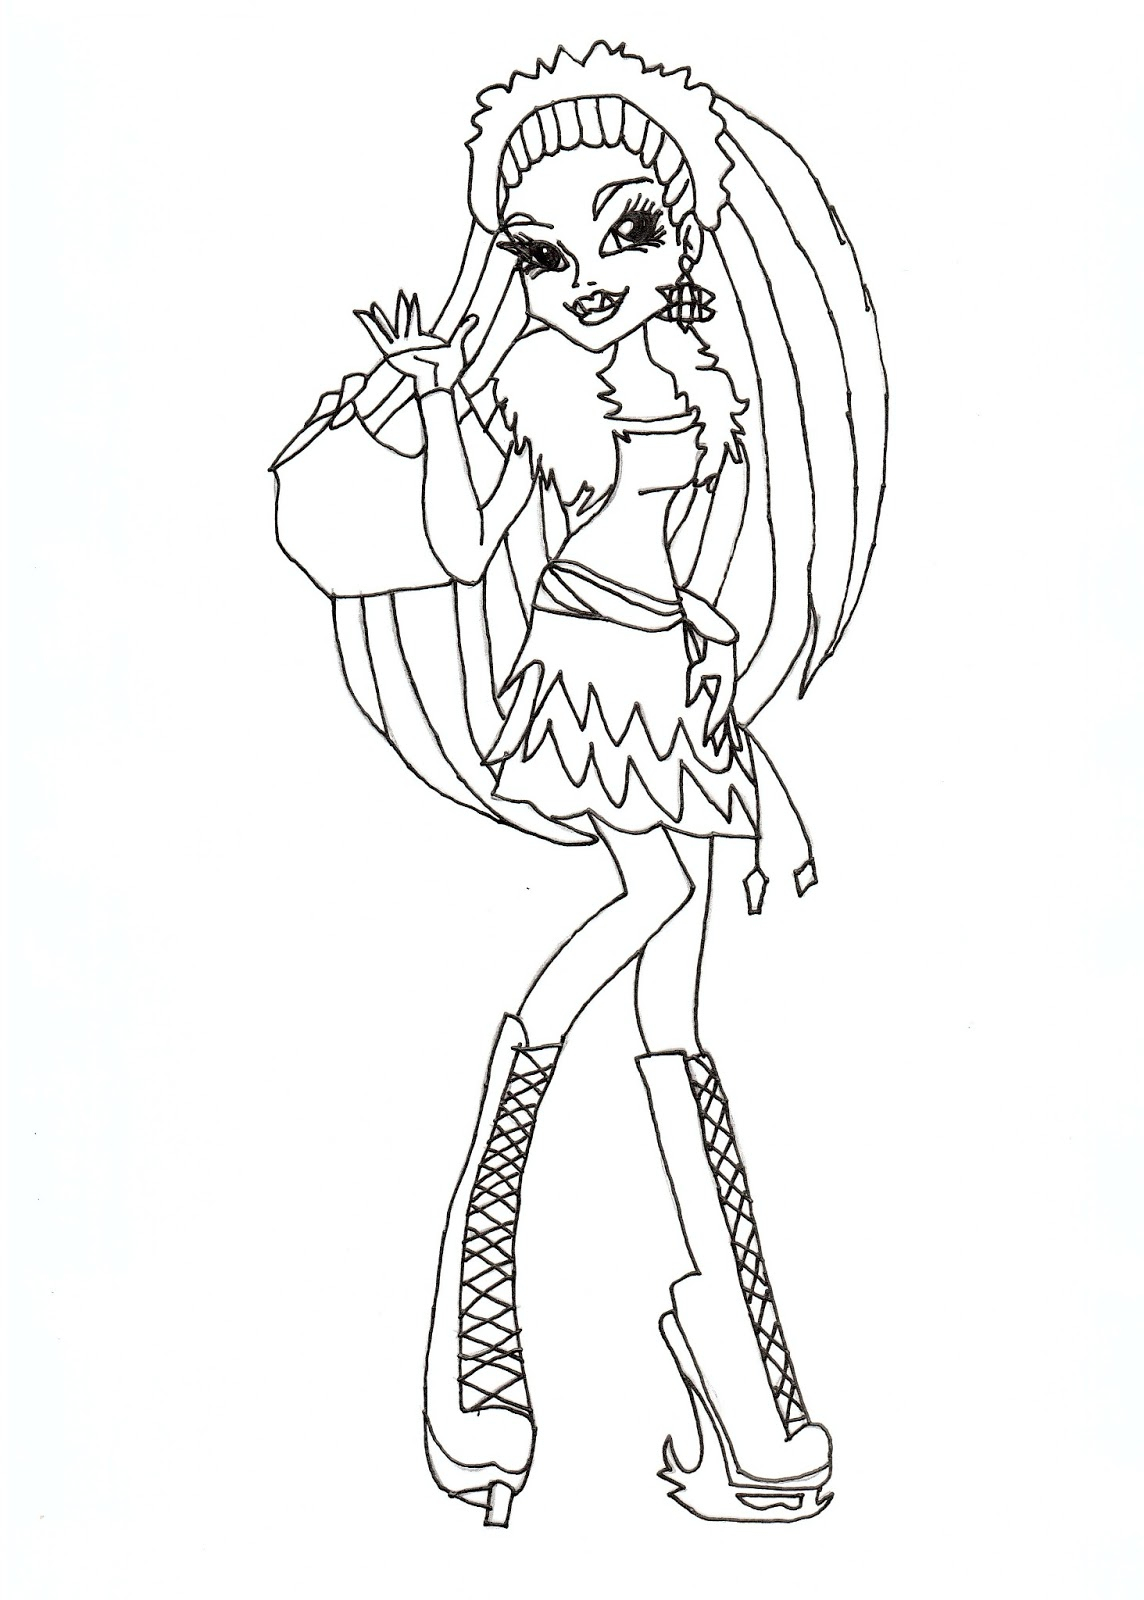 Inspiring Idea Monster High Coloring Pages 2 to Print Color Printable Of Monster High Coloring Pages Monster High Coloring Page All Collection